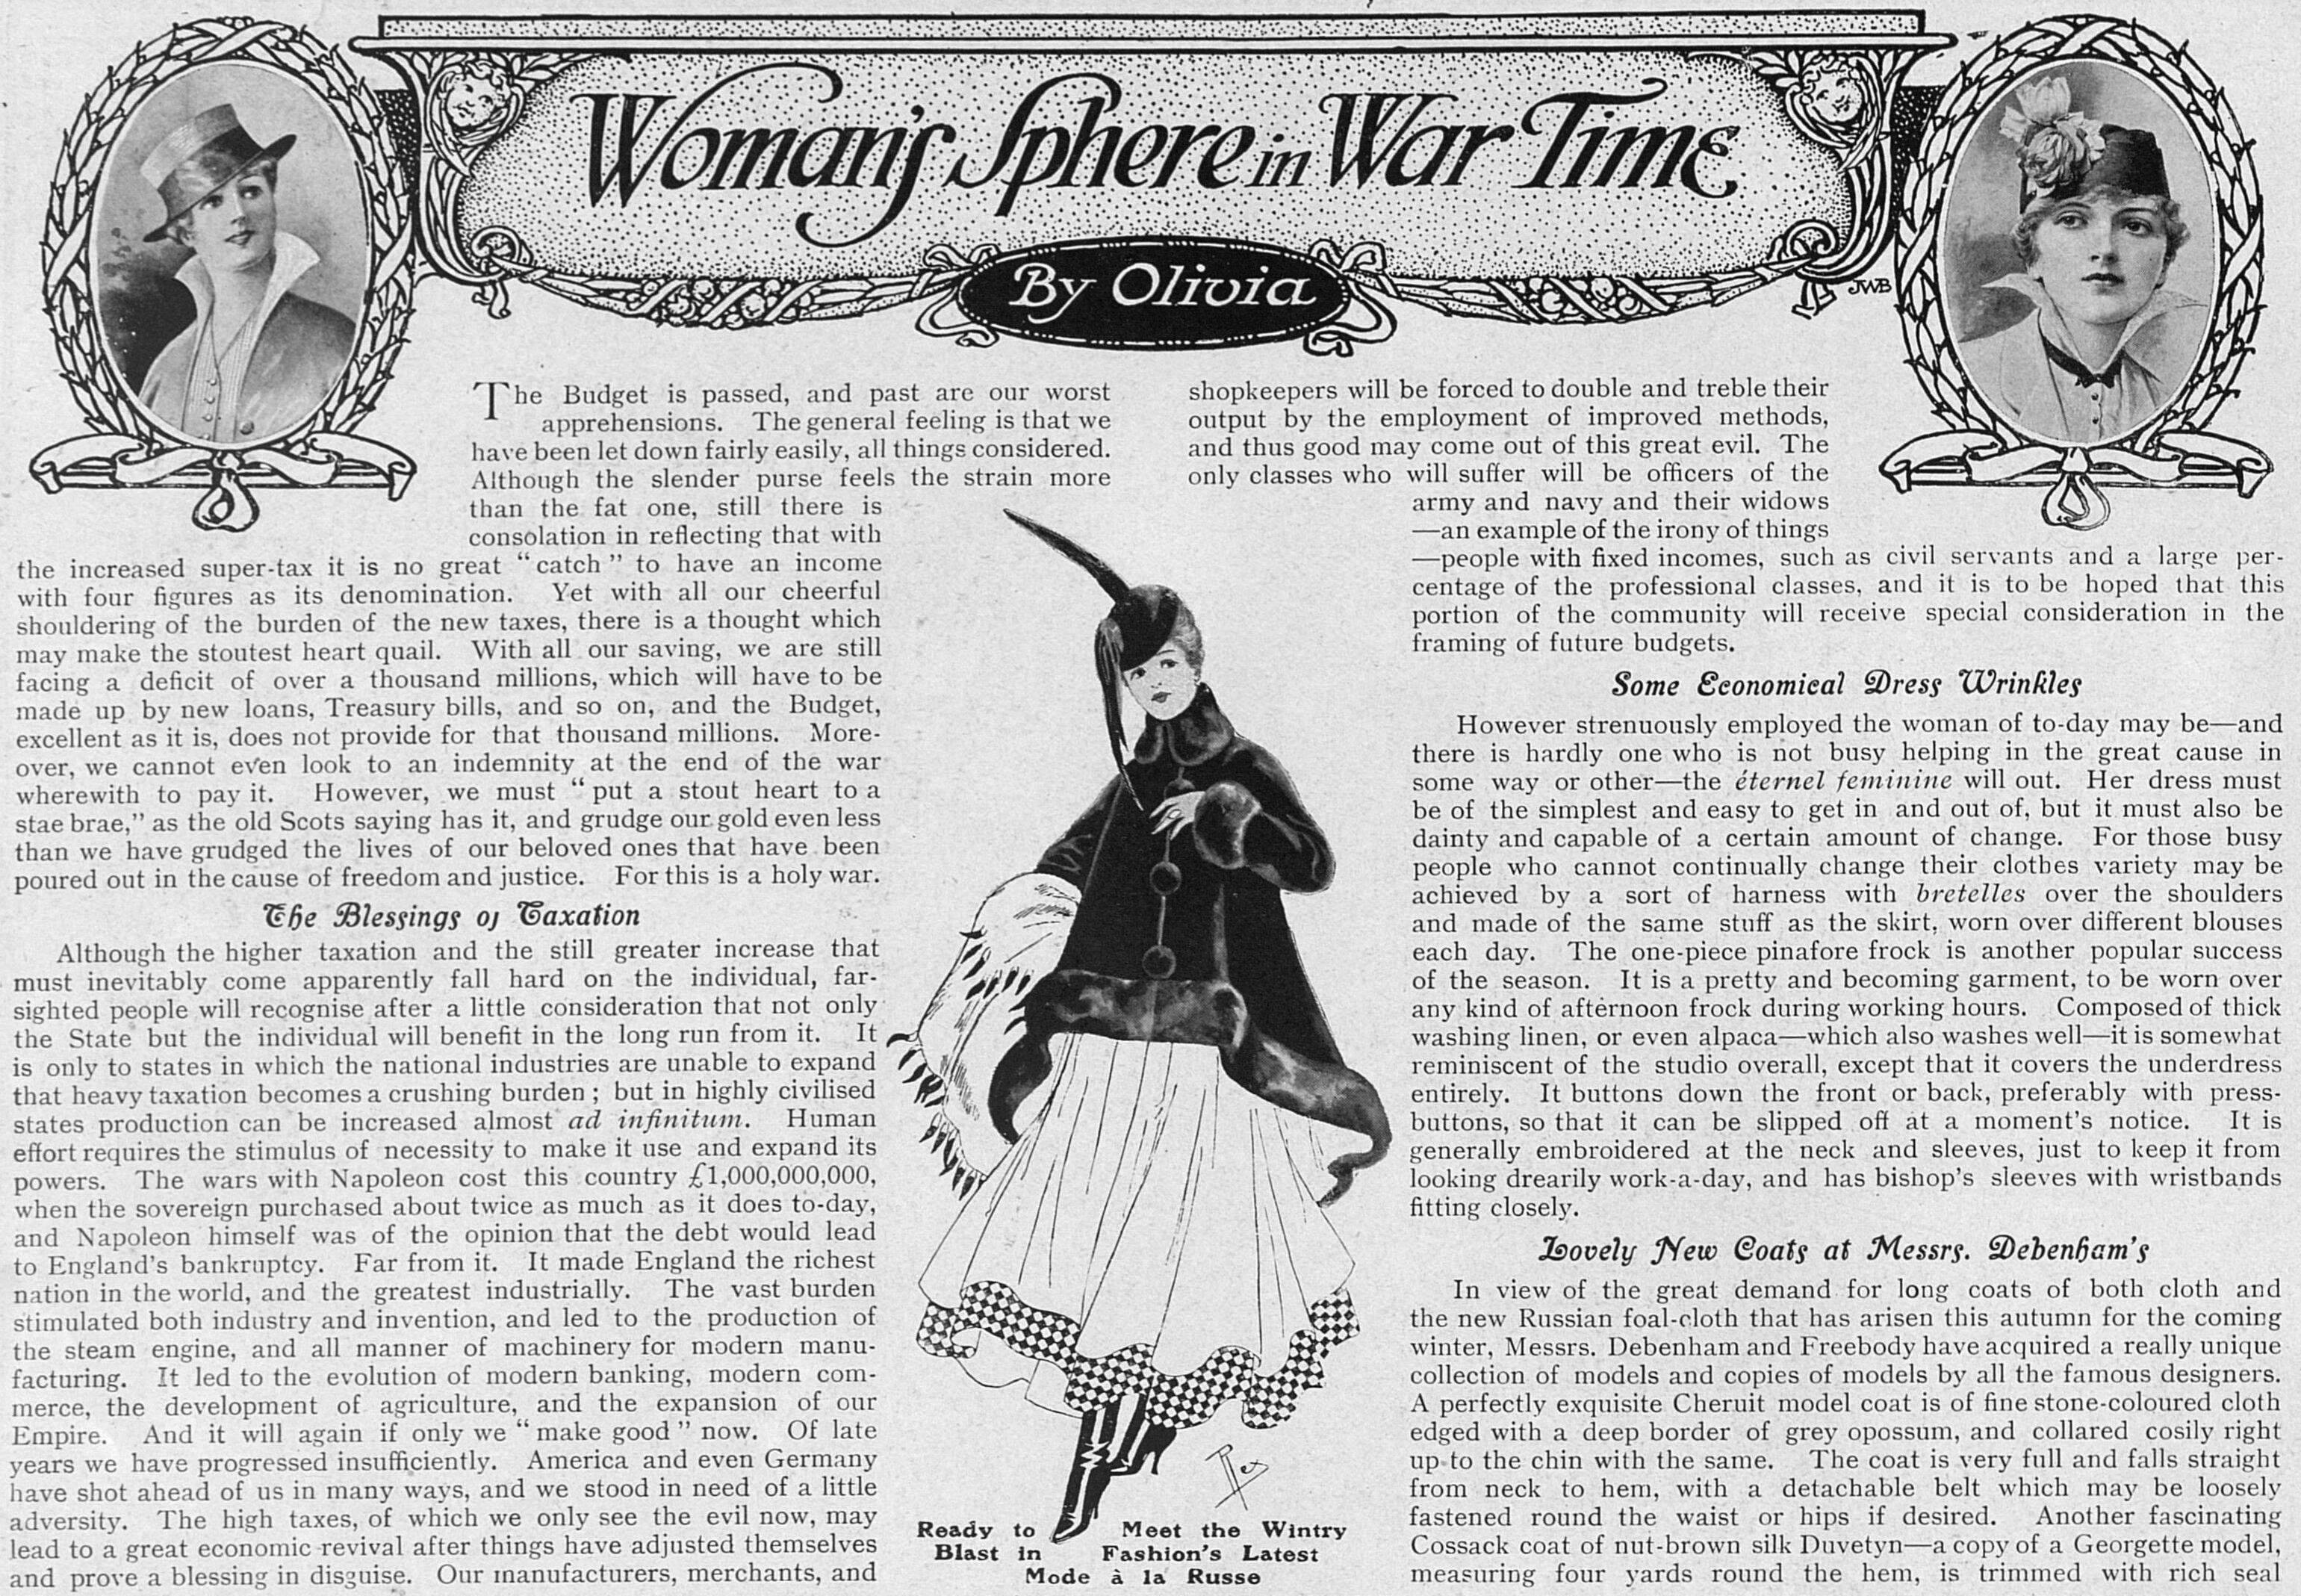 WomansSphereInWarTime_23Oct1915